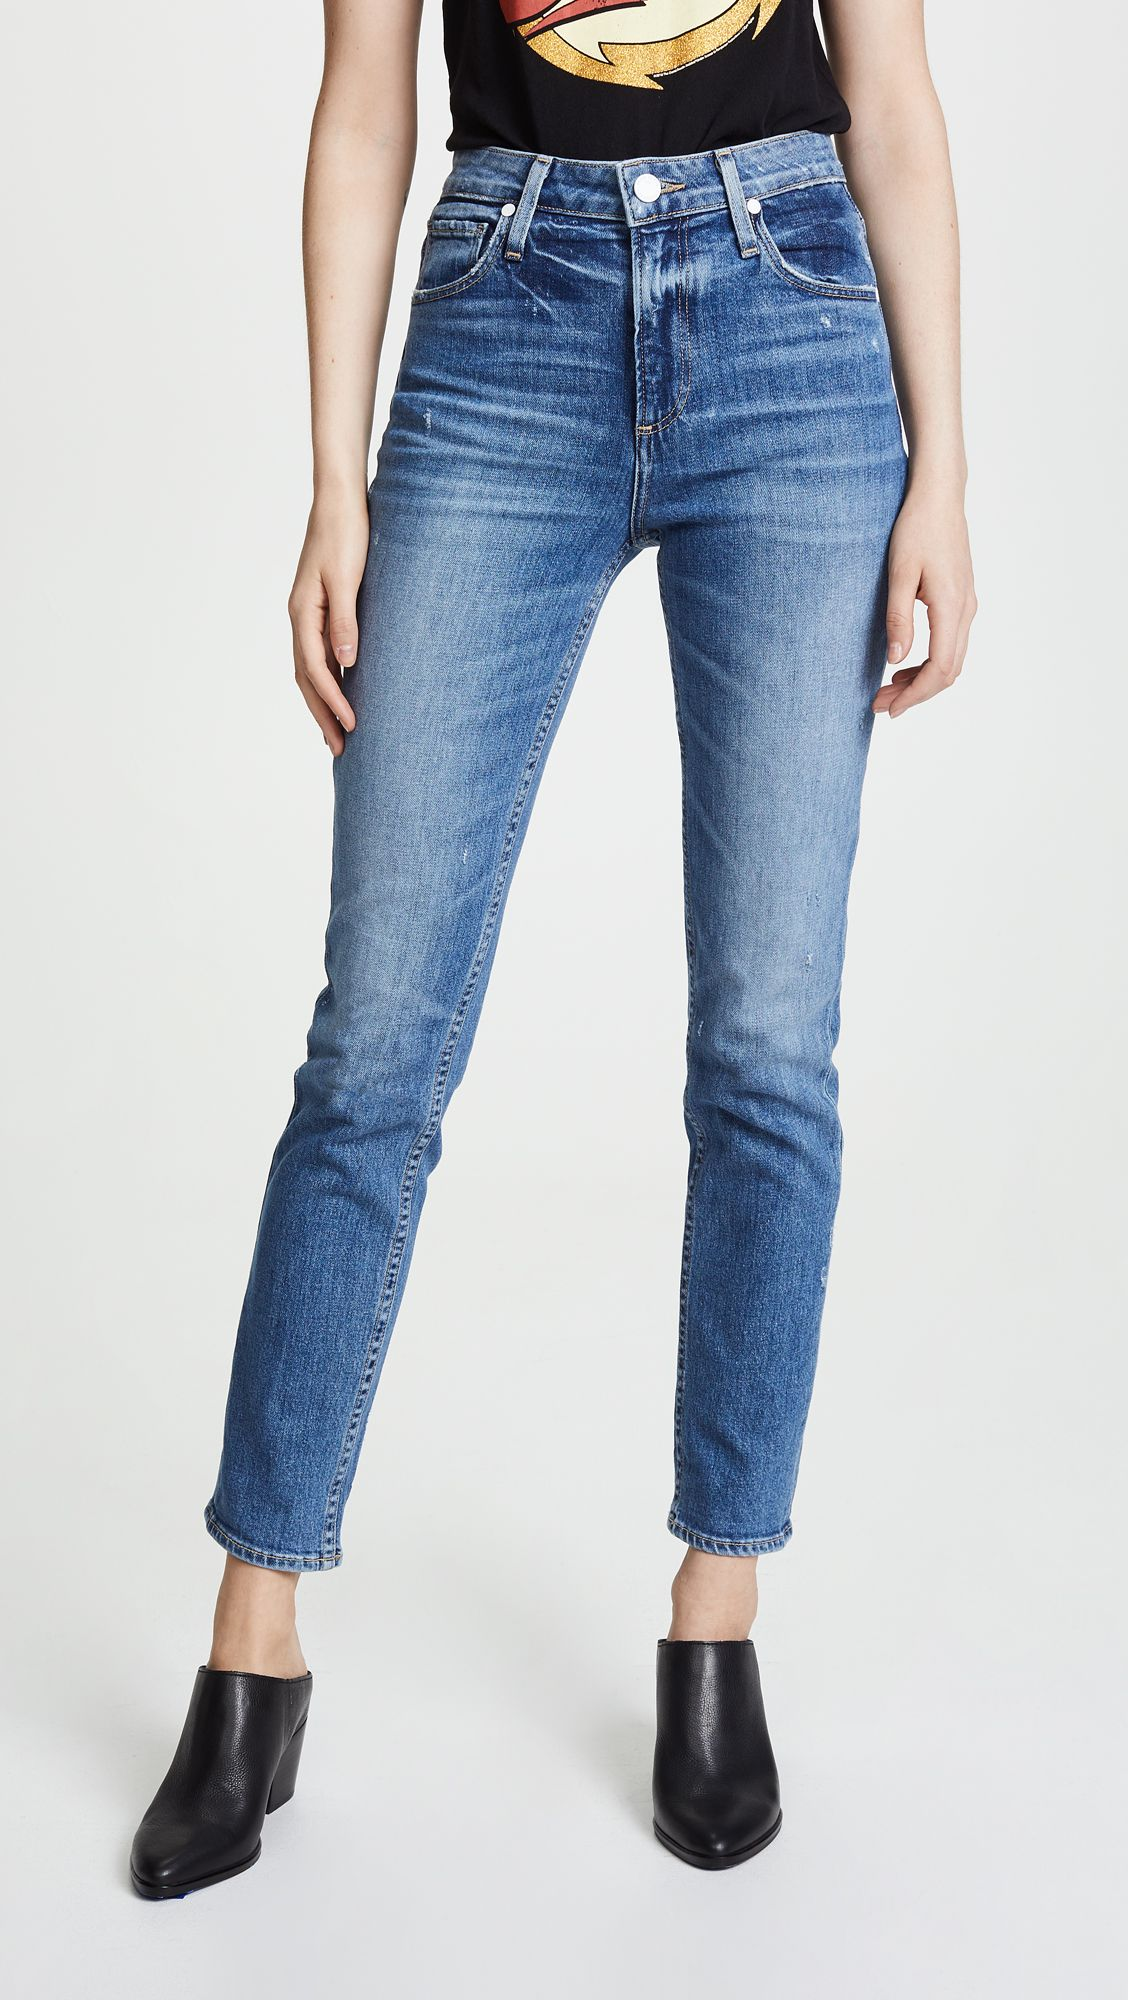 5 Issues Everyone Has With Skinny Jeans (and How to Fix Them) 7